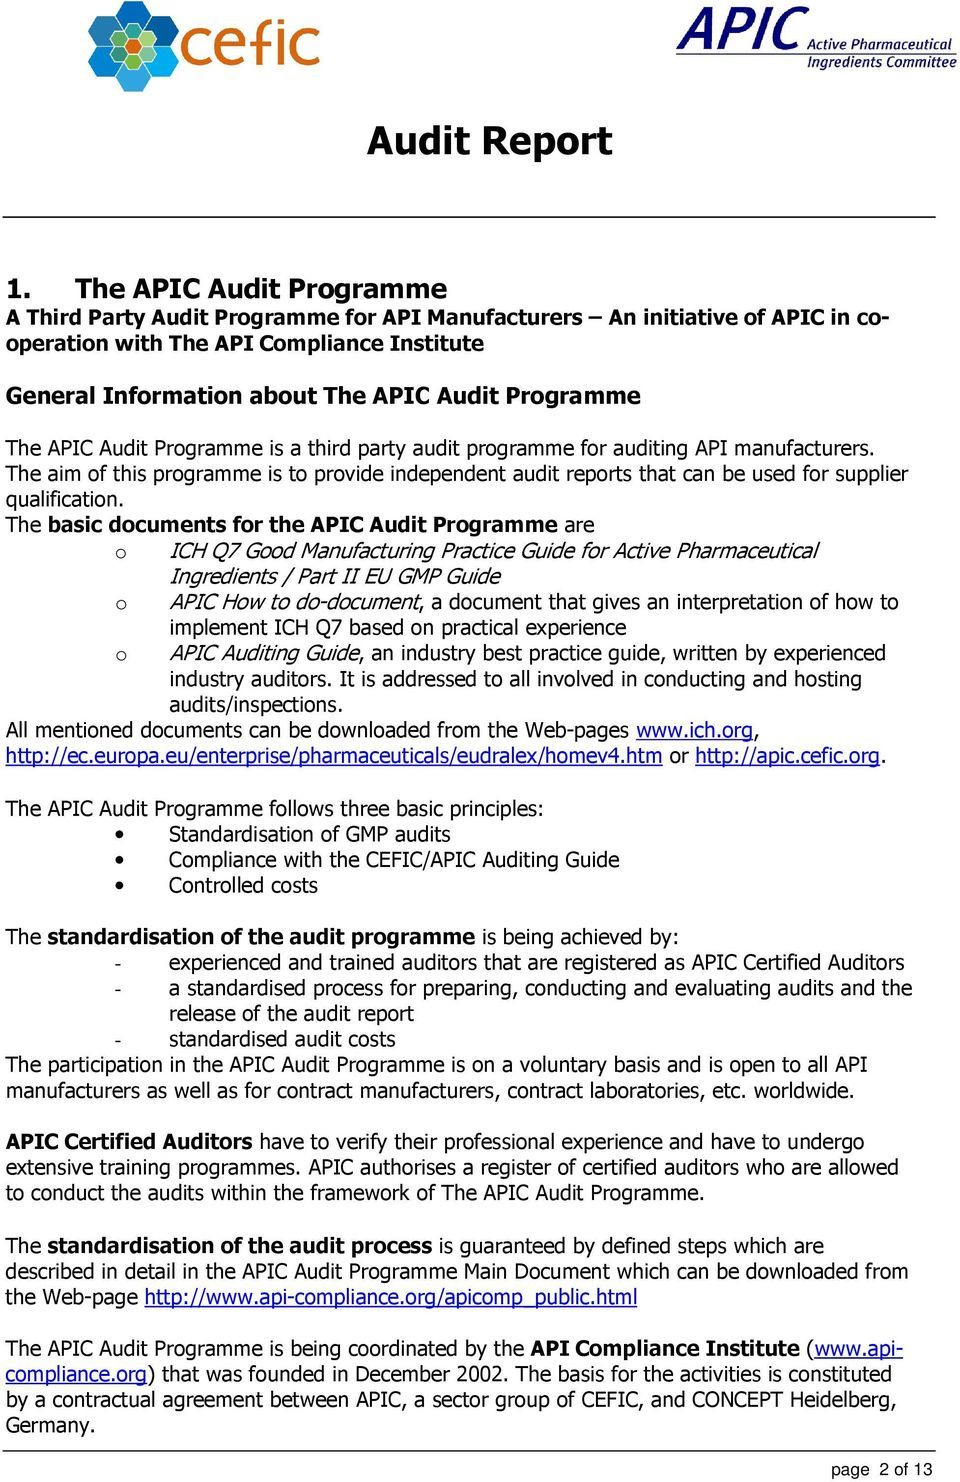 Audit Report In The Framework Of The Apic Audit Programme Within